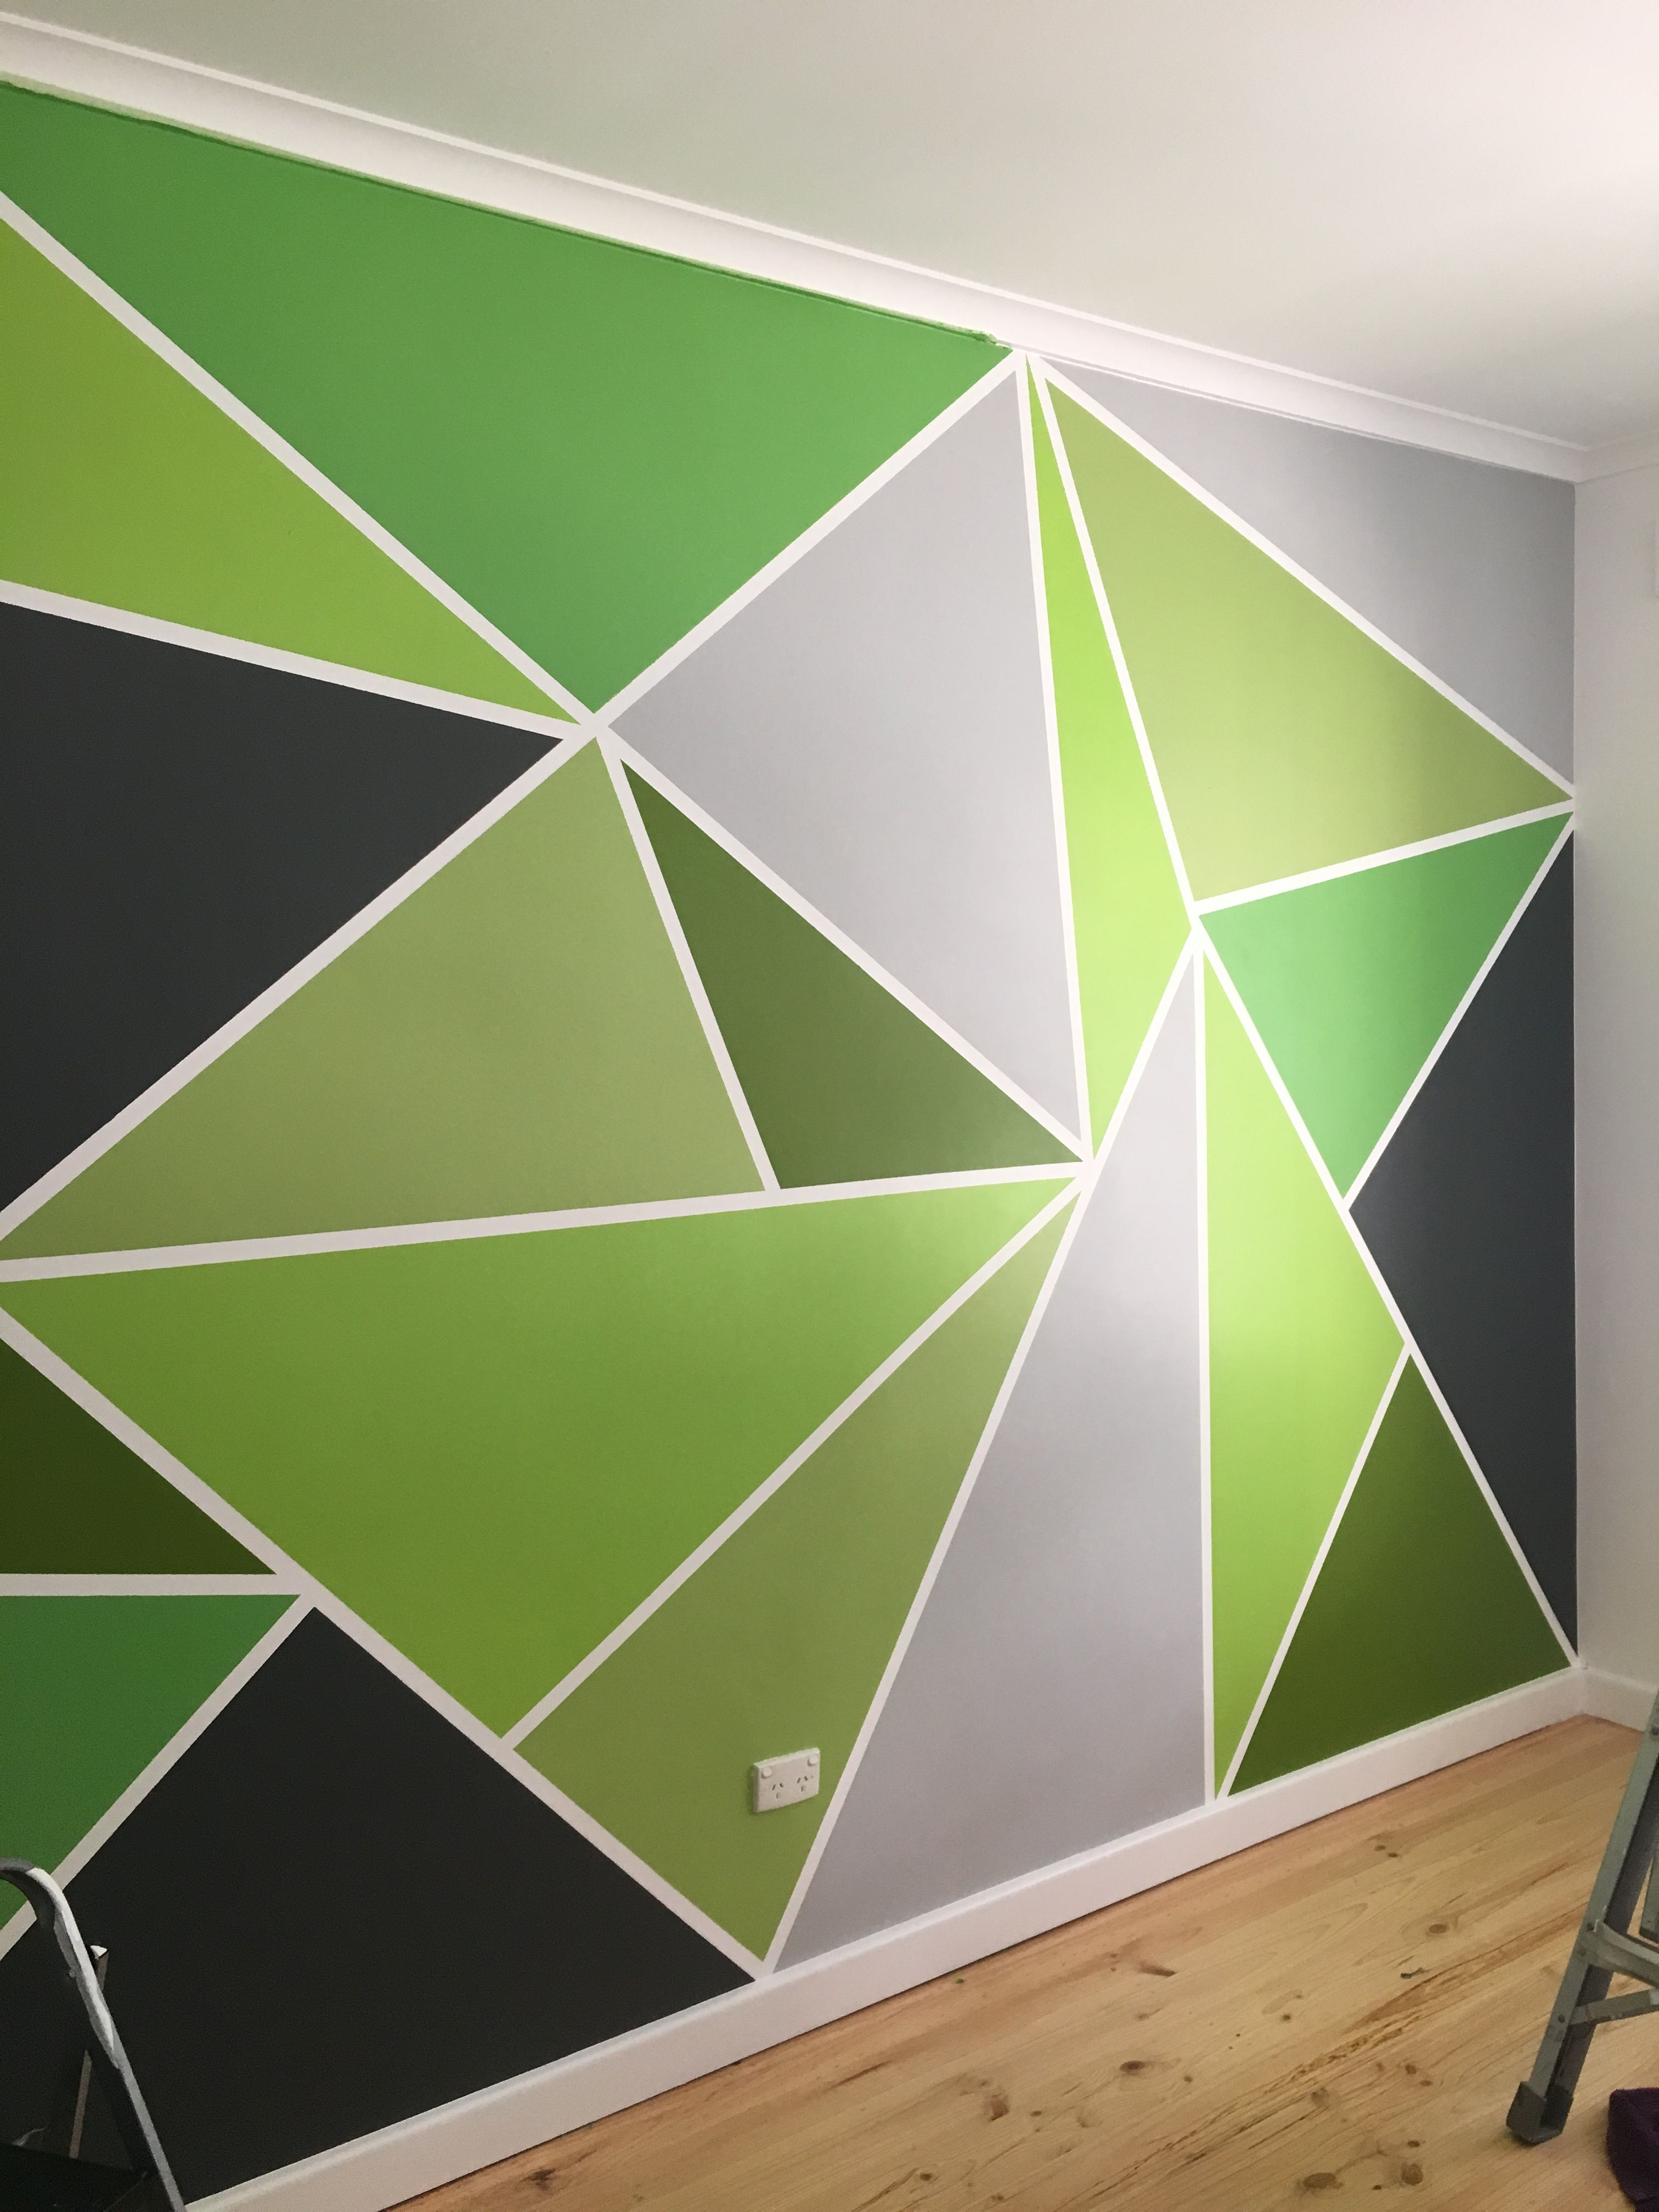 Mr 14 39 s bedroom with a new painted feature wall room - Geometric wall designs with paint ...